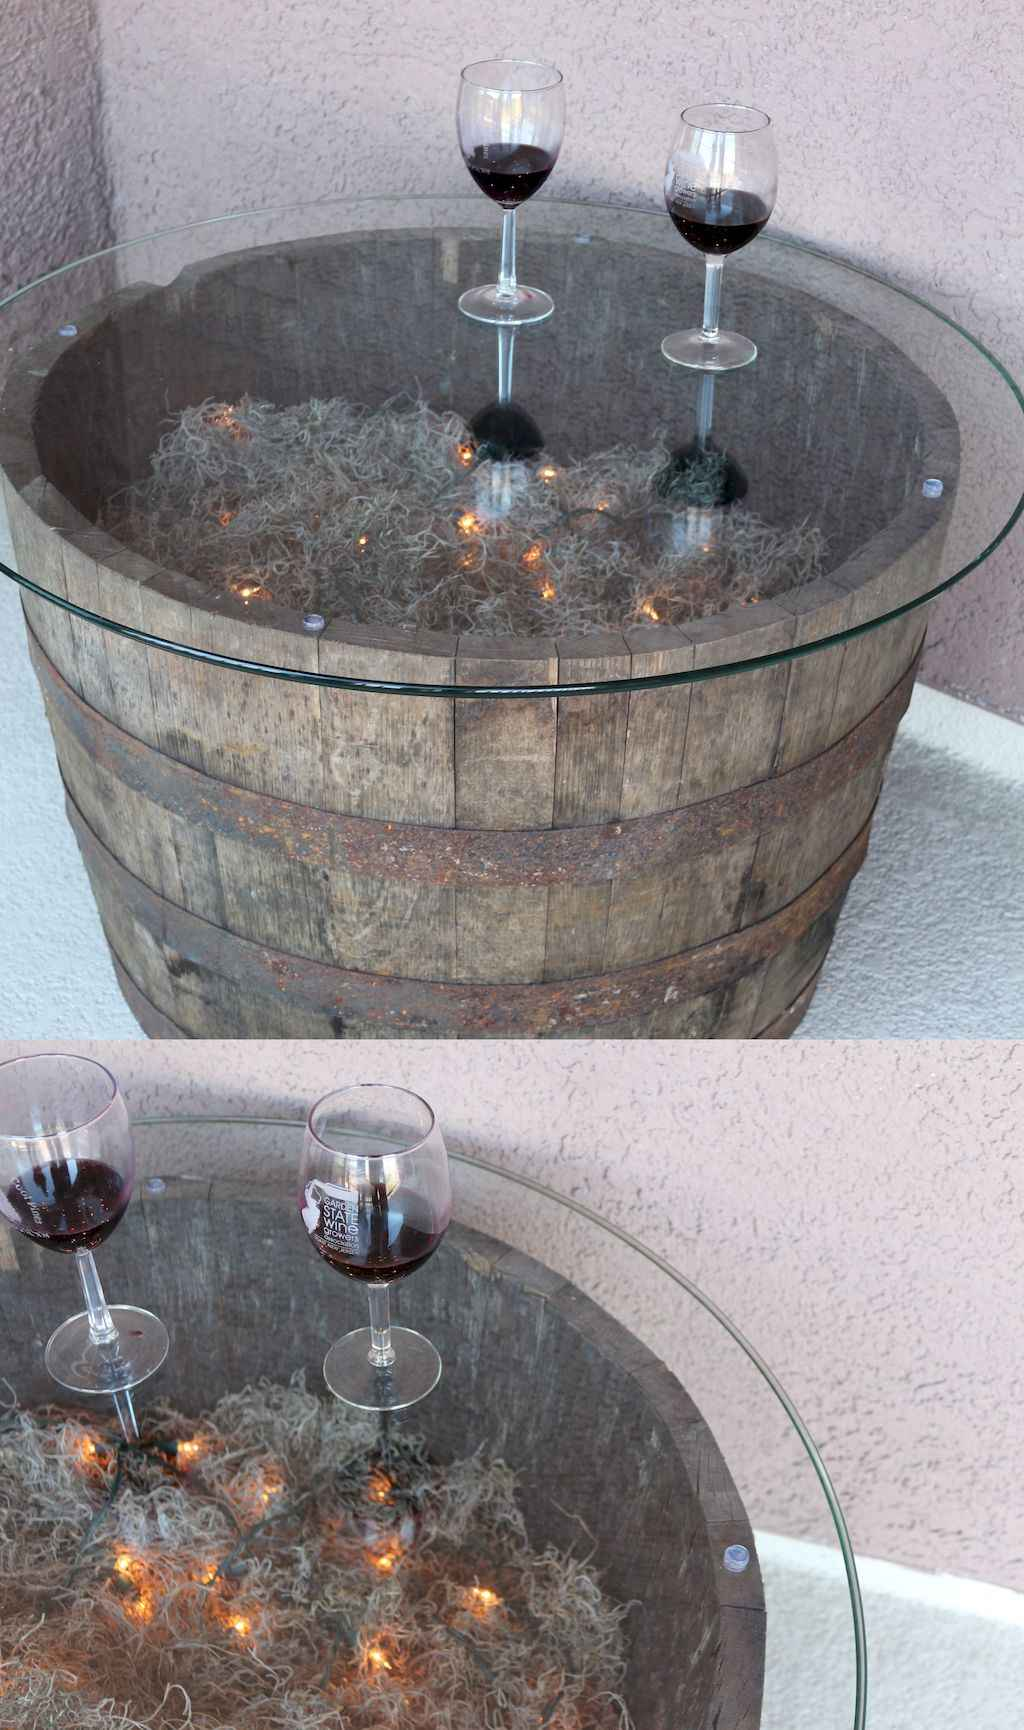 Cleverly diy porch patio decorating ideas (31)